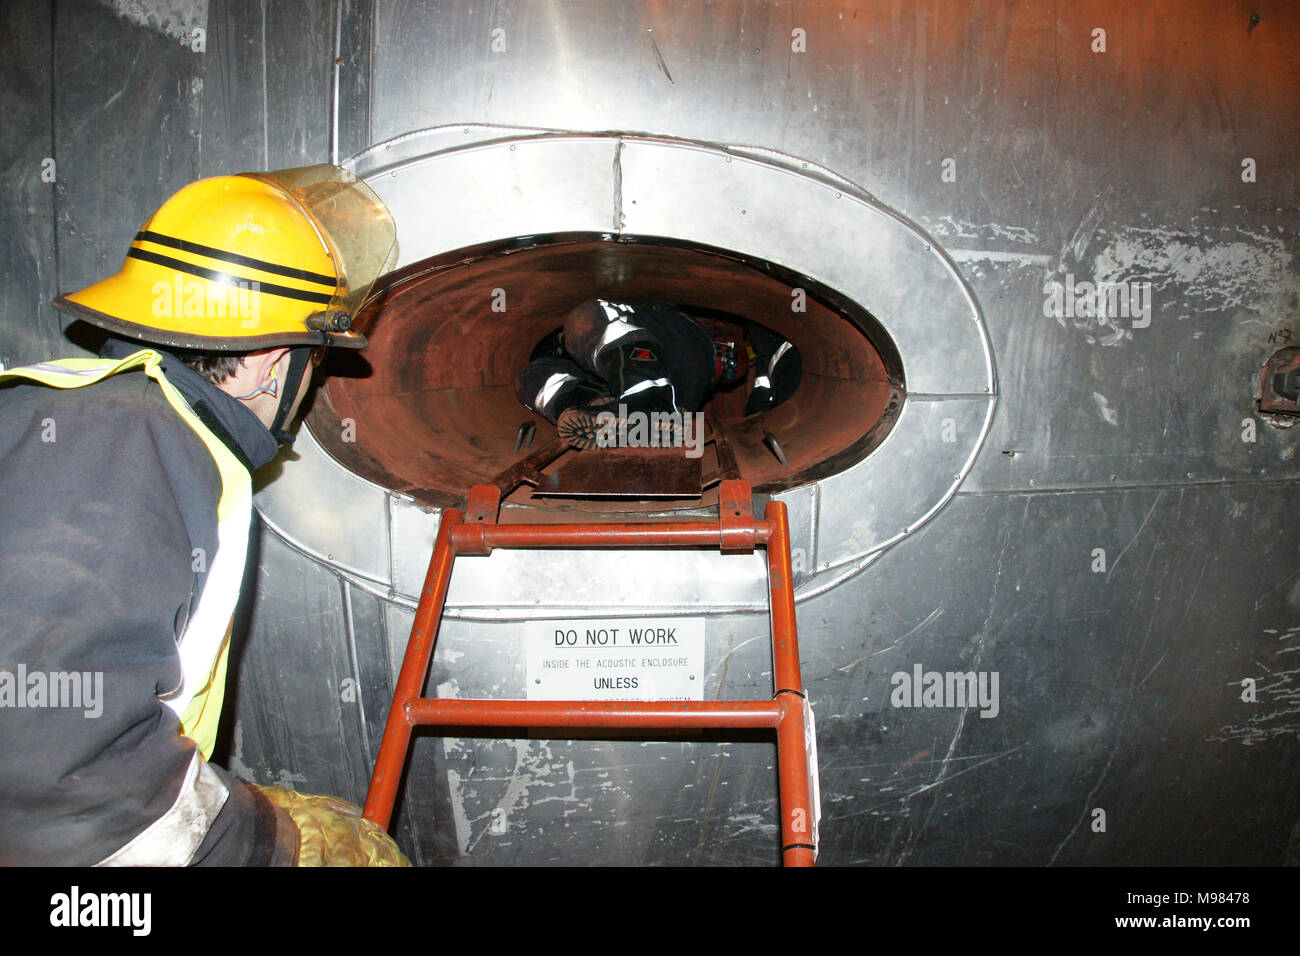 fire fighter dealing with technical rescue operation, the rescue and recovery of victims trapped in a confined space - Stock Image